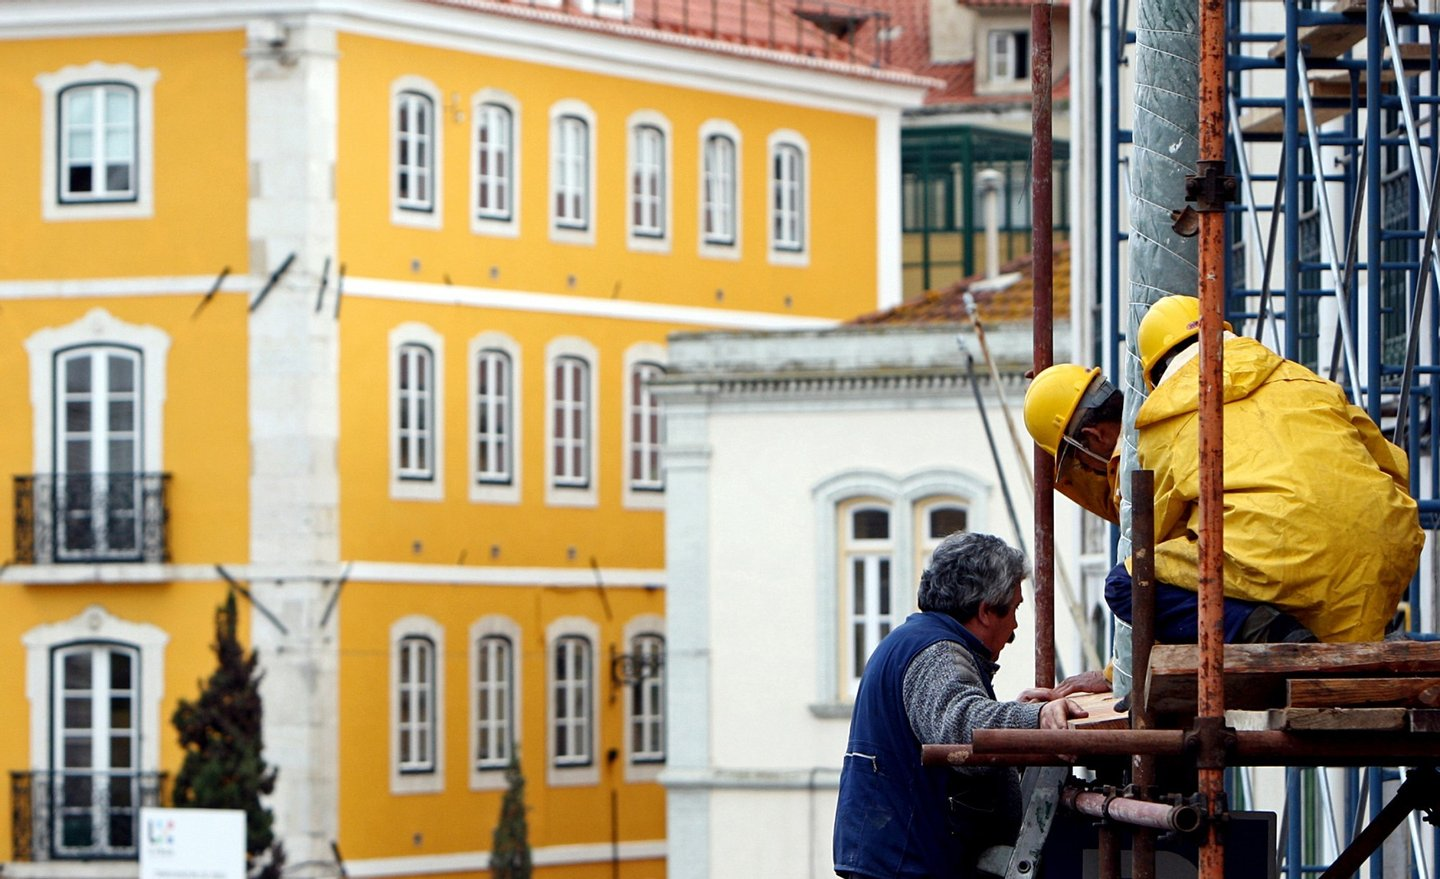 TO GO WITH AFP STORY IN FRENCH BY THOMAS CABRAL ---Construction workers mount a truss on a building in downtown Lisbon on February 4, 2009. Several buildings in Lisbon are undergoing renovations to restore them to their original look. For a long time promised, the makeover of the Baixa quarter, the historical centre of Lisbon which layed deteriorated and empty of inhabitants, is finally becoming a reality thanks to the town hall's renovations in the heart of the Portuguese capital. AFP PHOTO/ JOAO CORTESAO        (Photo credit should read JOAO CORTESAO/AFP/Getty Images)